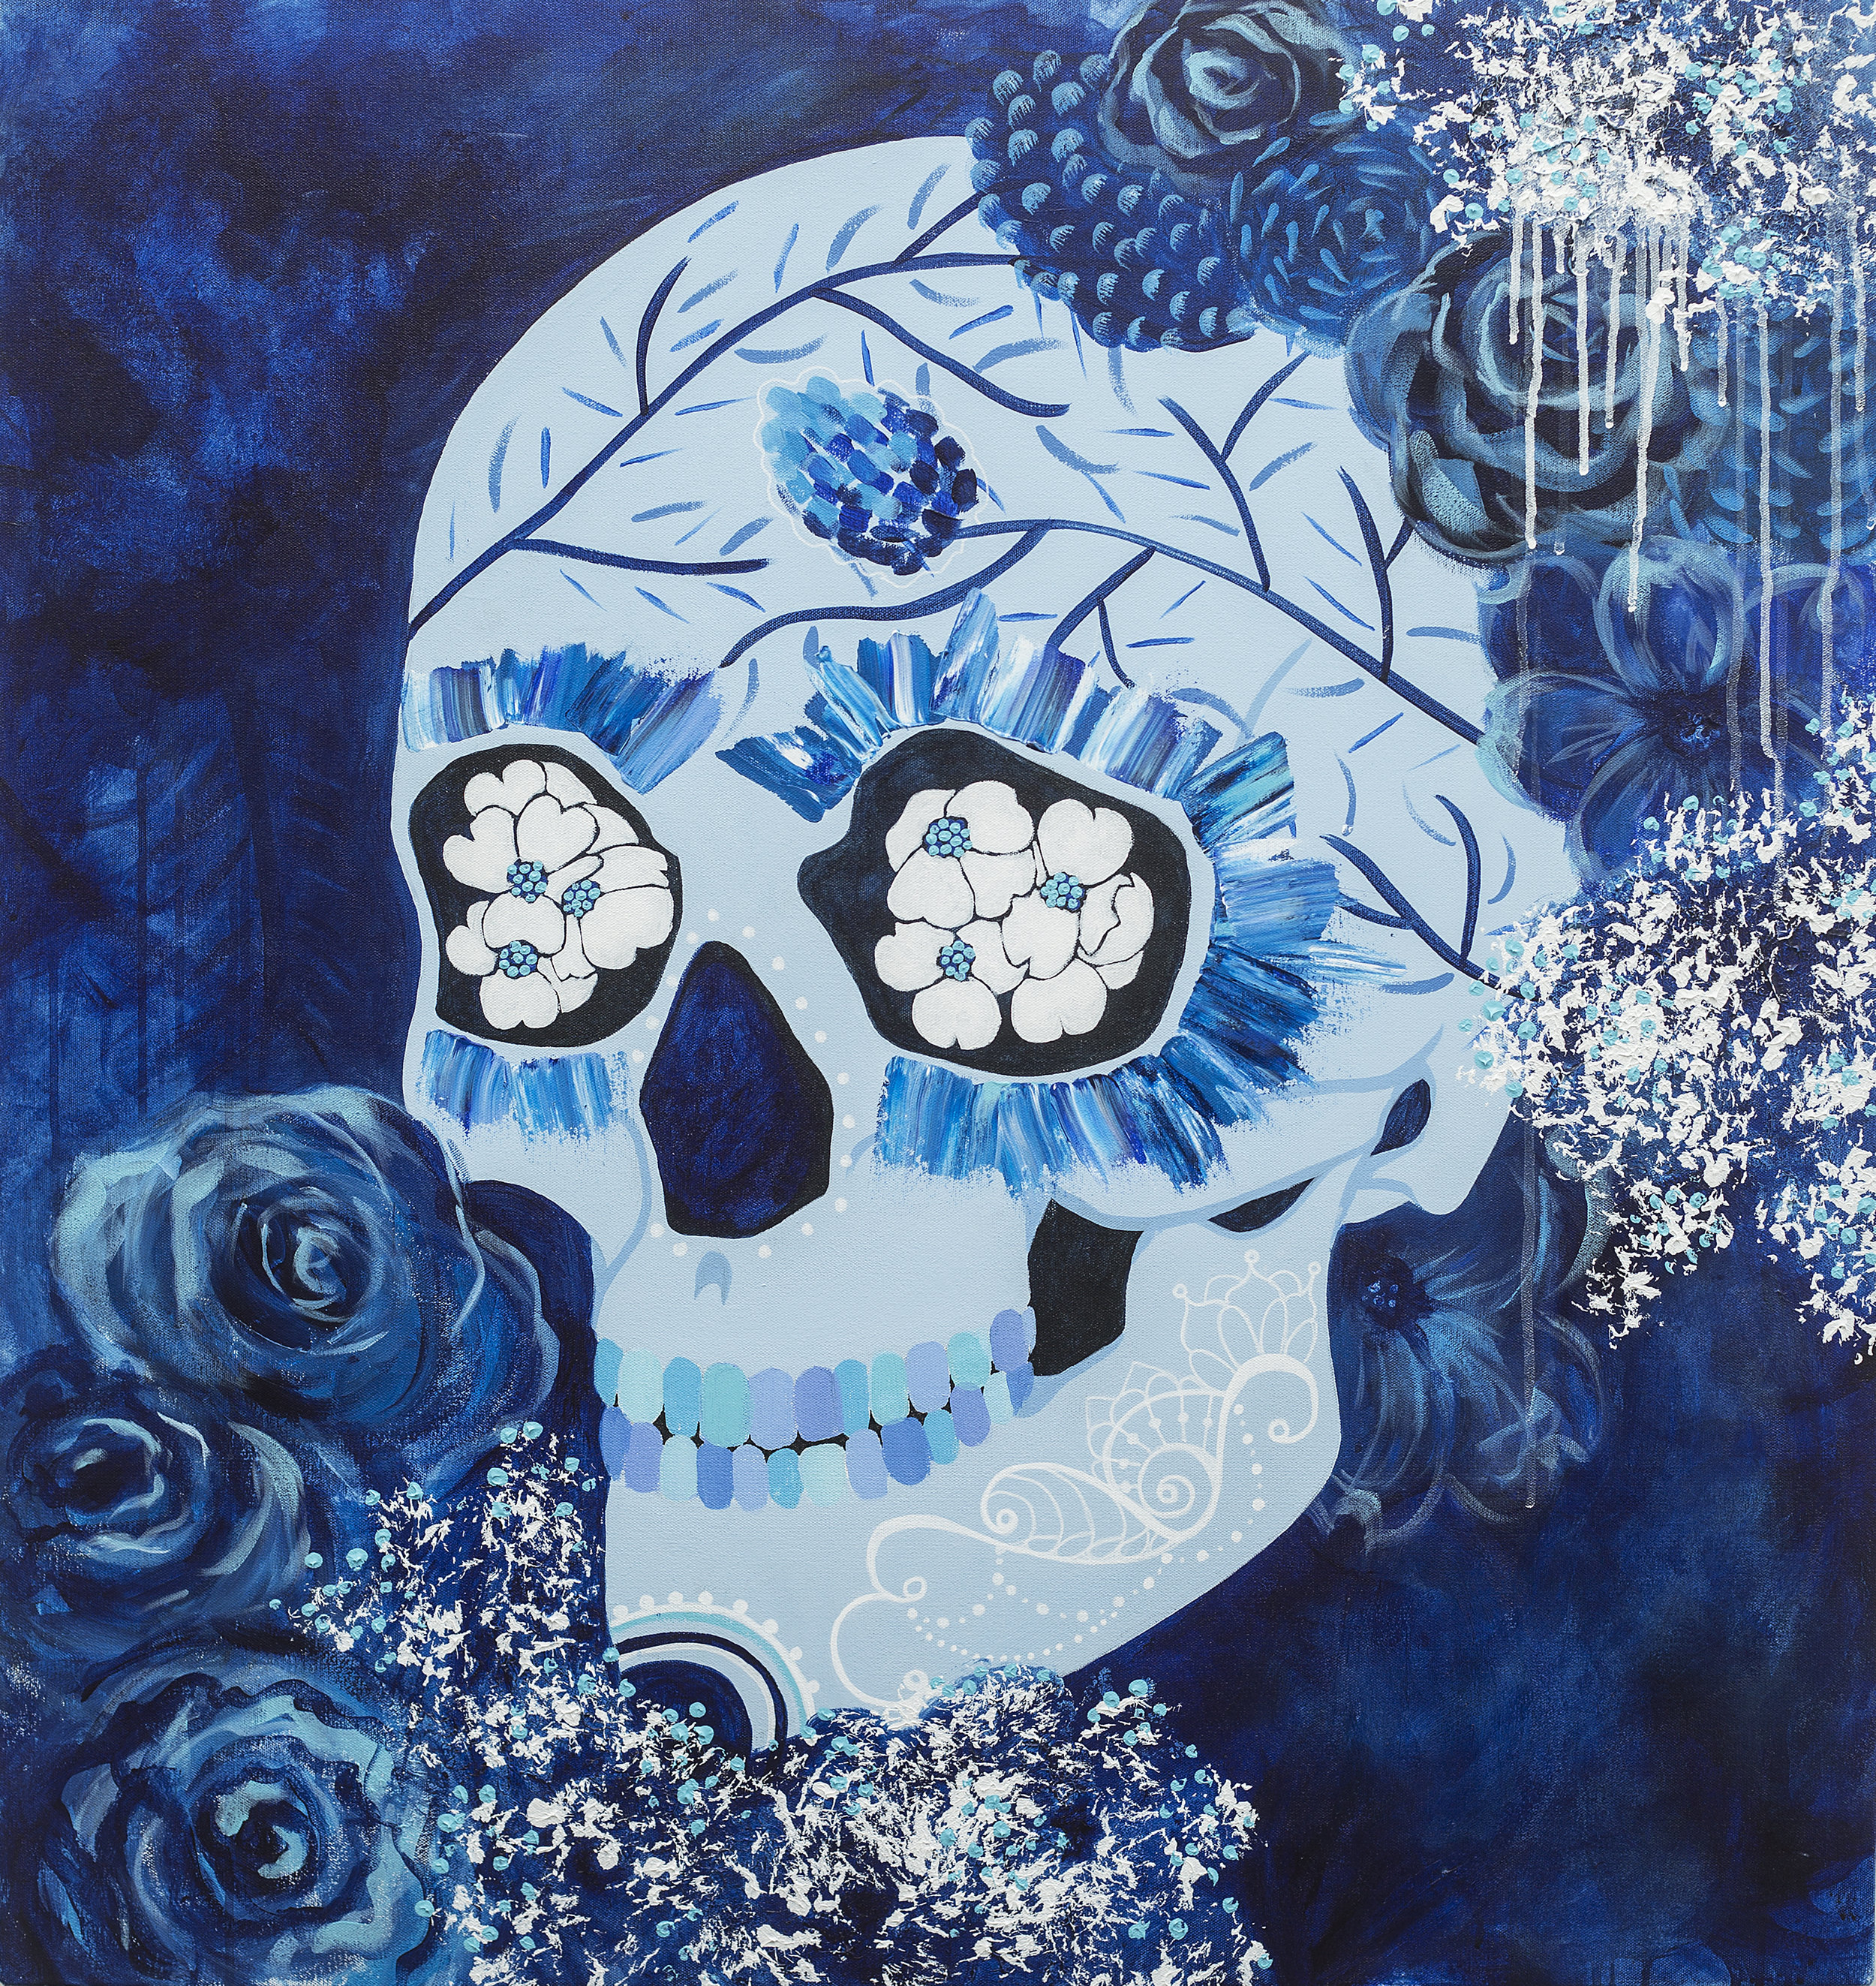 "Project: Sugar Skull for Private collection - 3 ft X 3.5 ft"" / Mixed Media on stretched canvas"